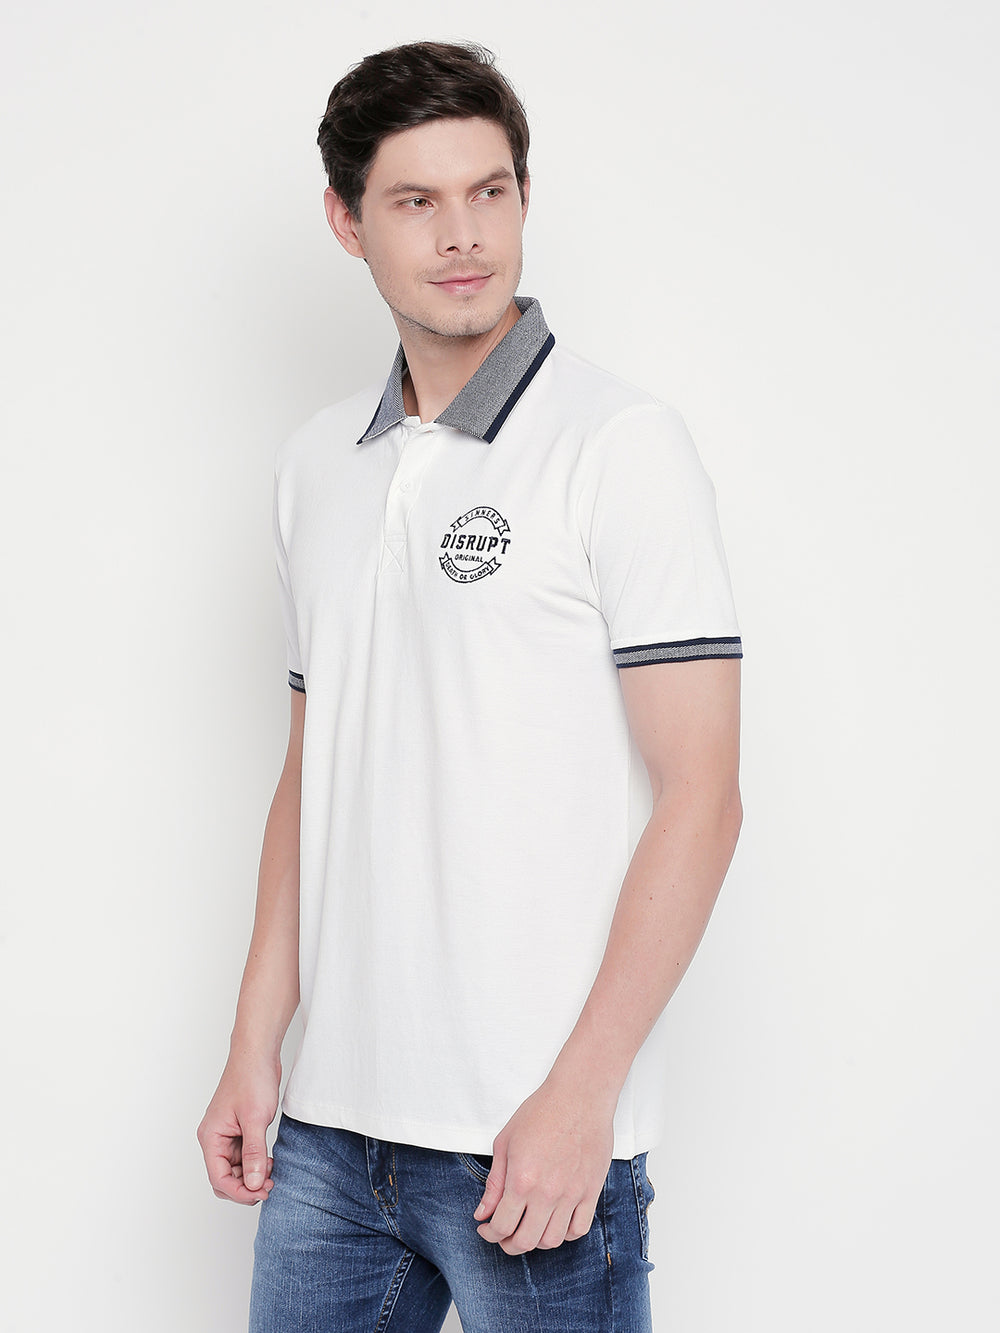 Disrupt Grey Collared White Regular-Fit Polo T-shirt